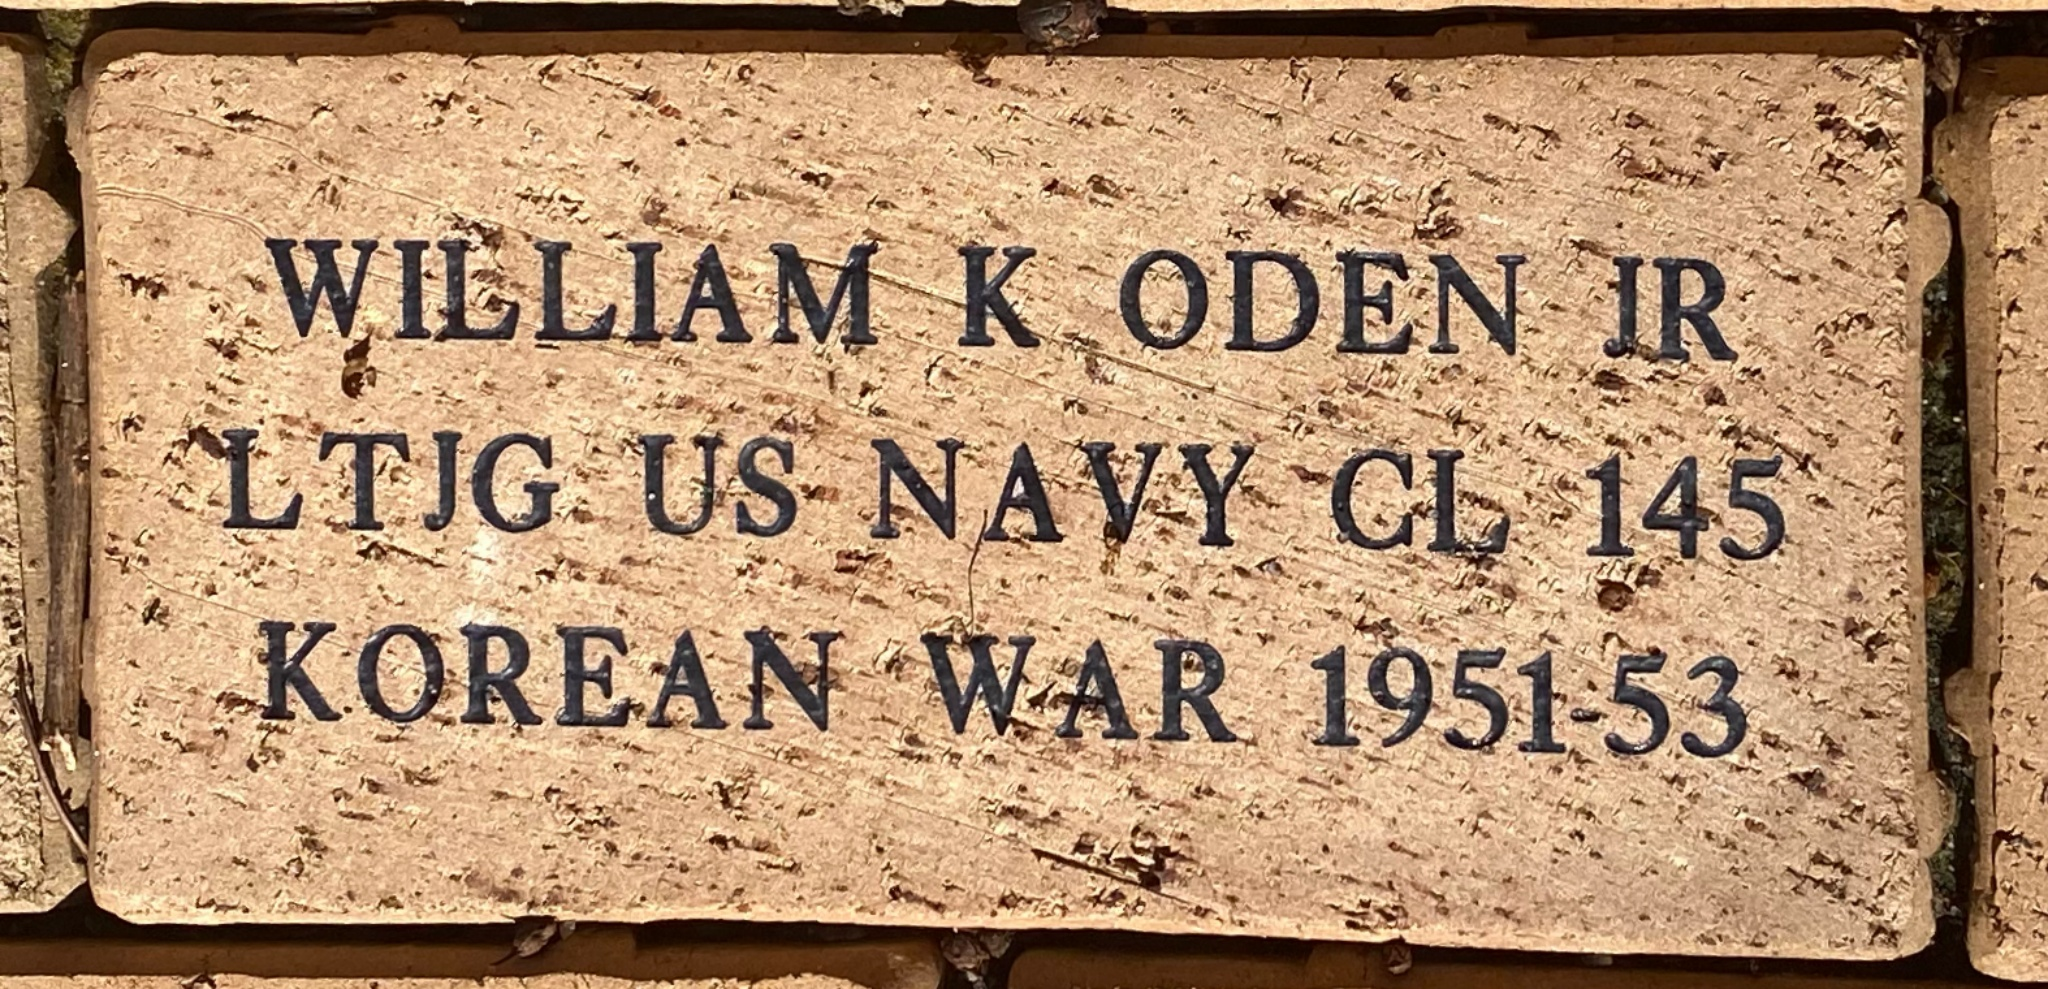 WILLIAM K ODEN JR LTJG US NAVY CL 145 KOREAN WAR 1951-53